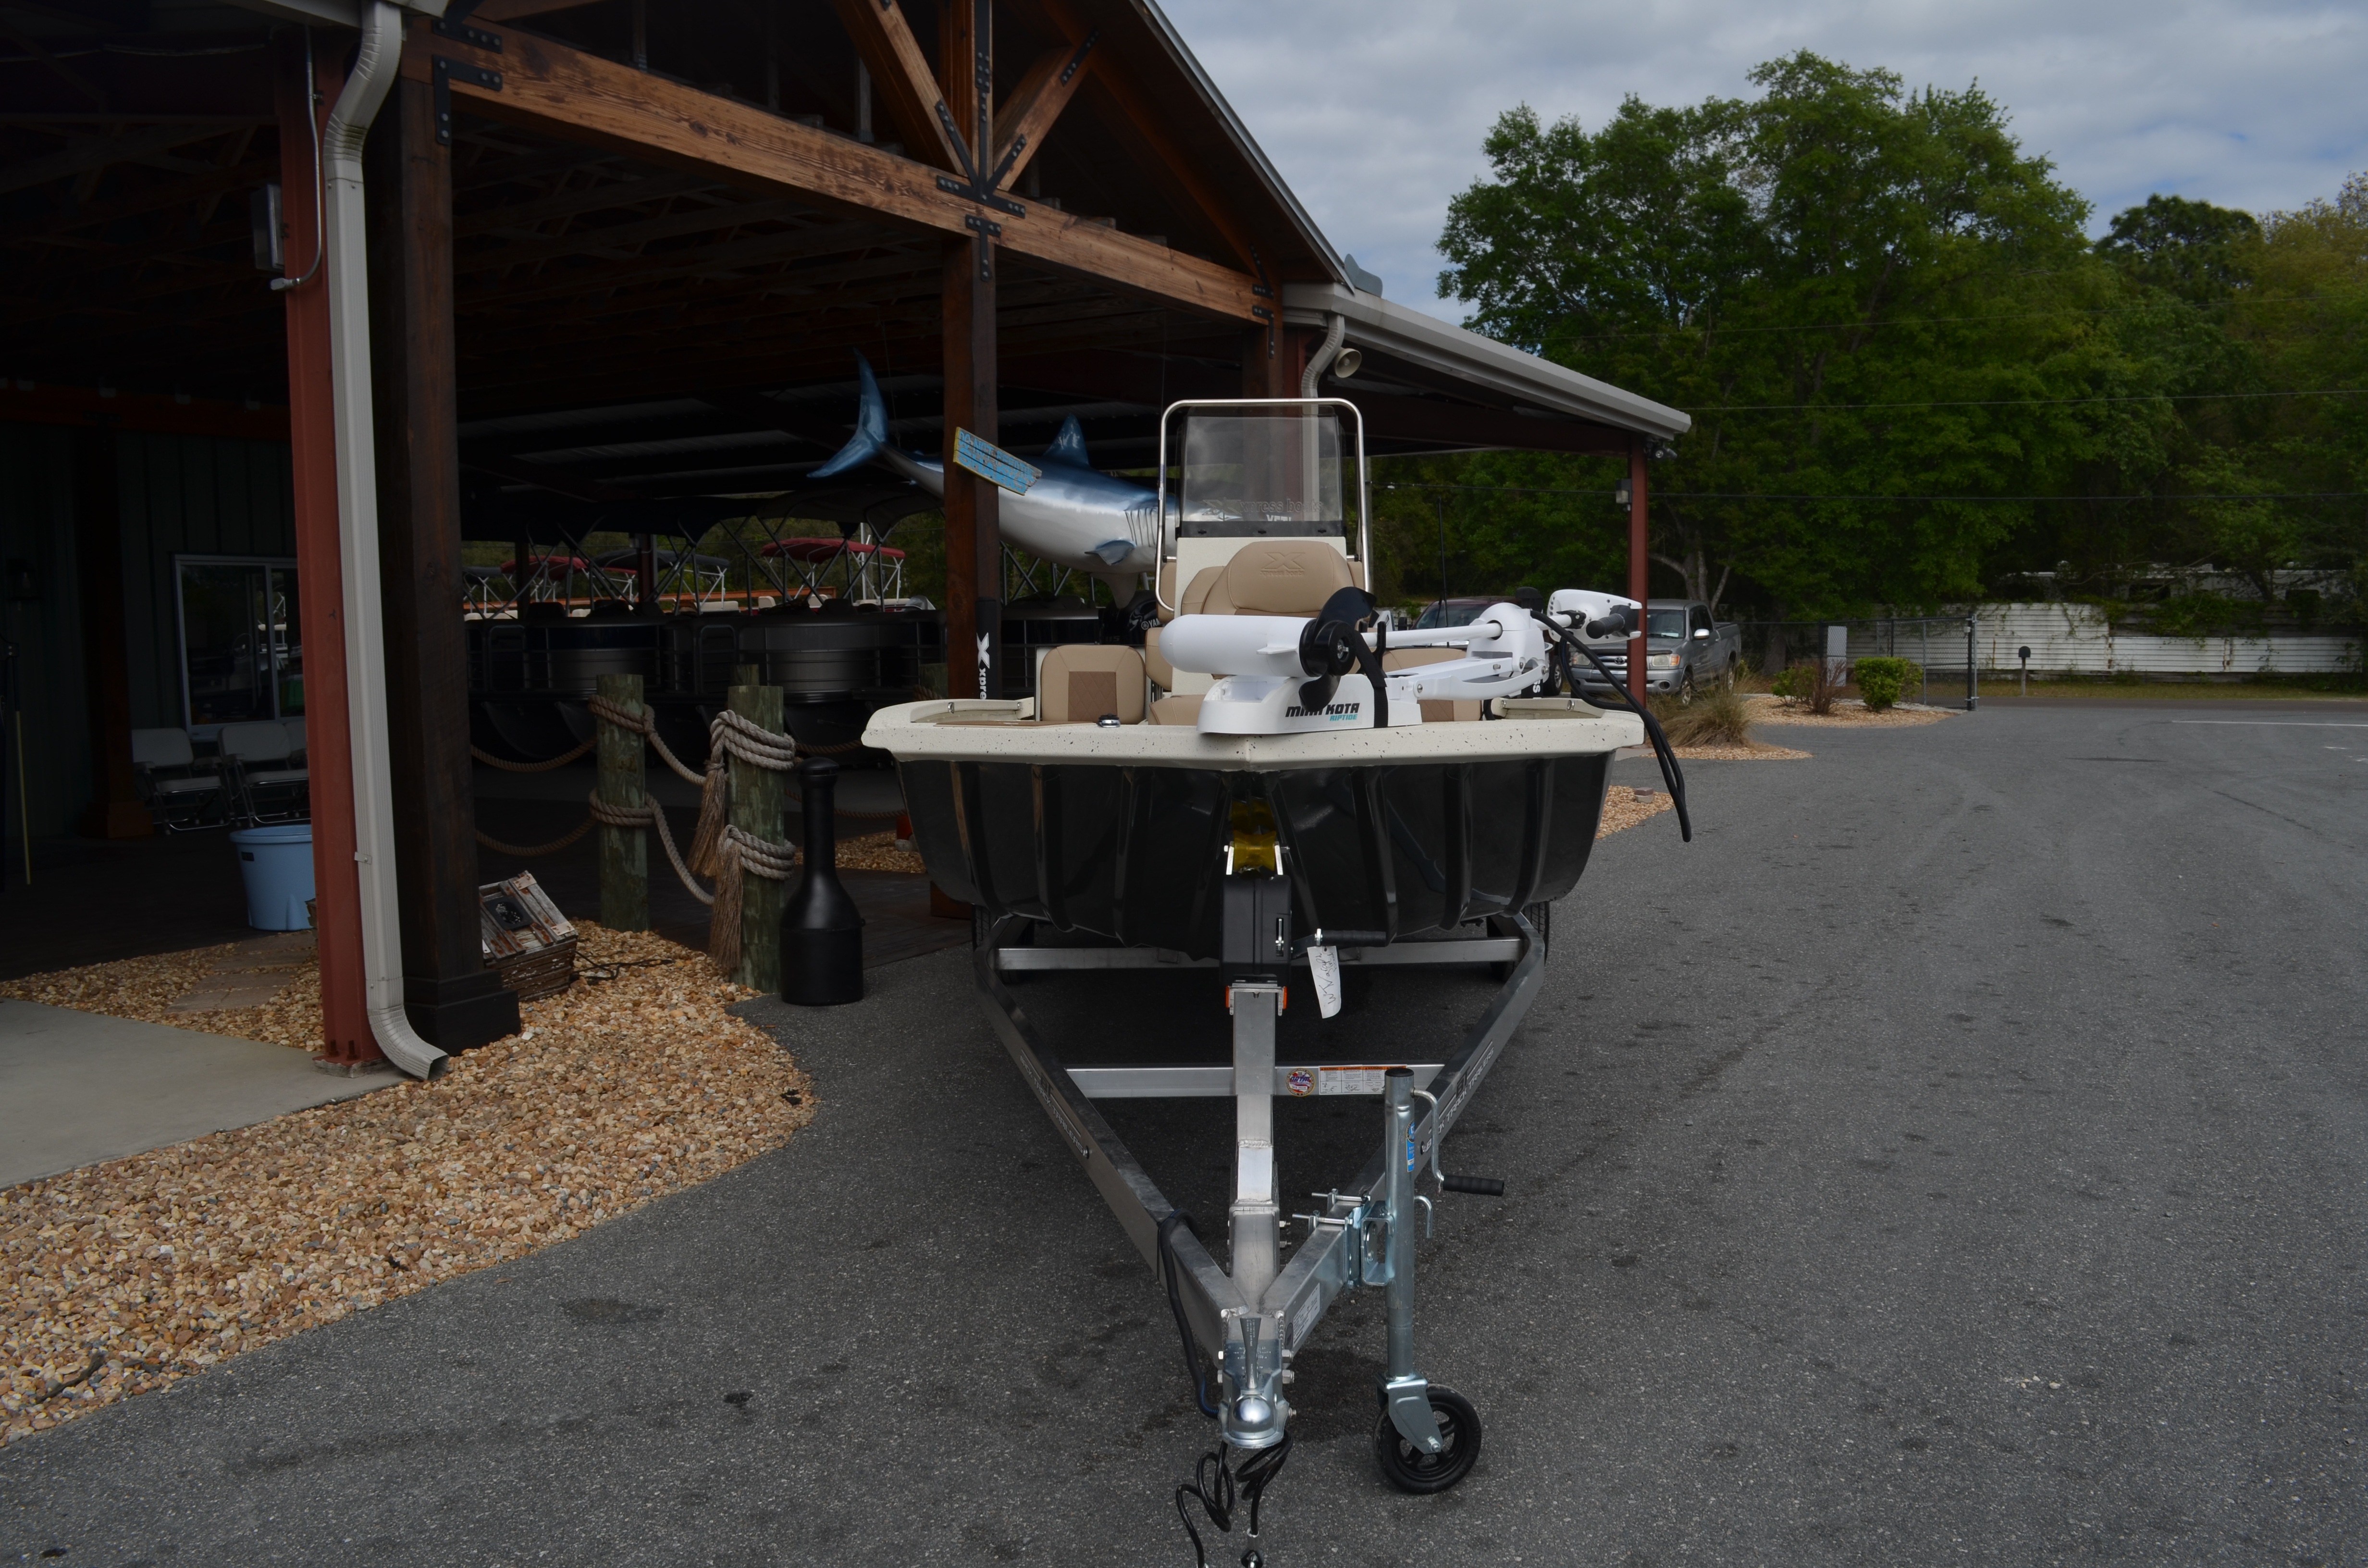 2019 Xpress SW20 | Gulf to Lake Marine and Trailers